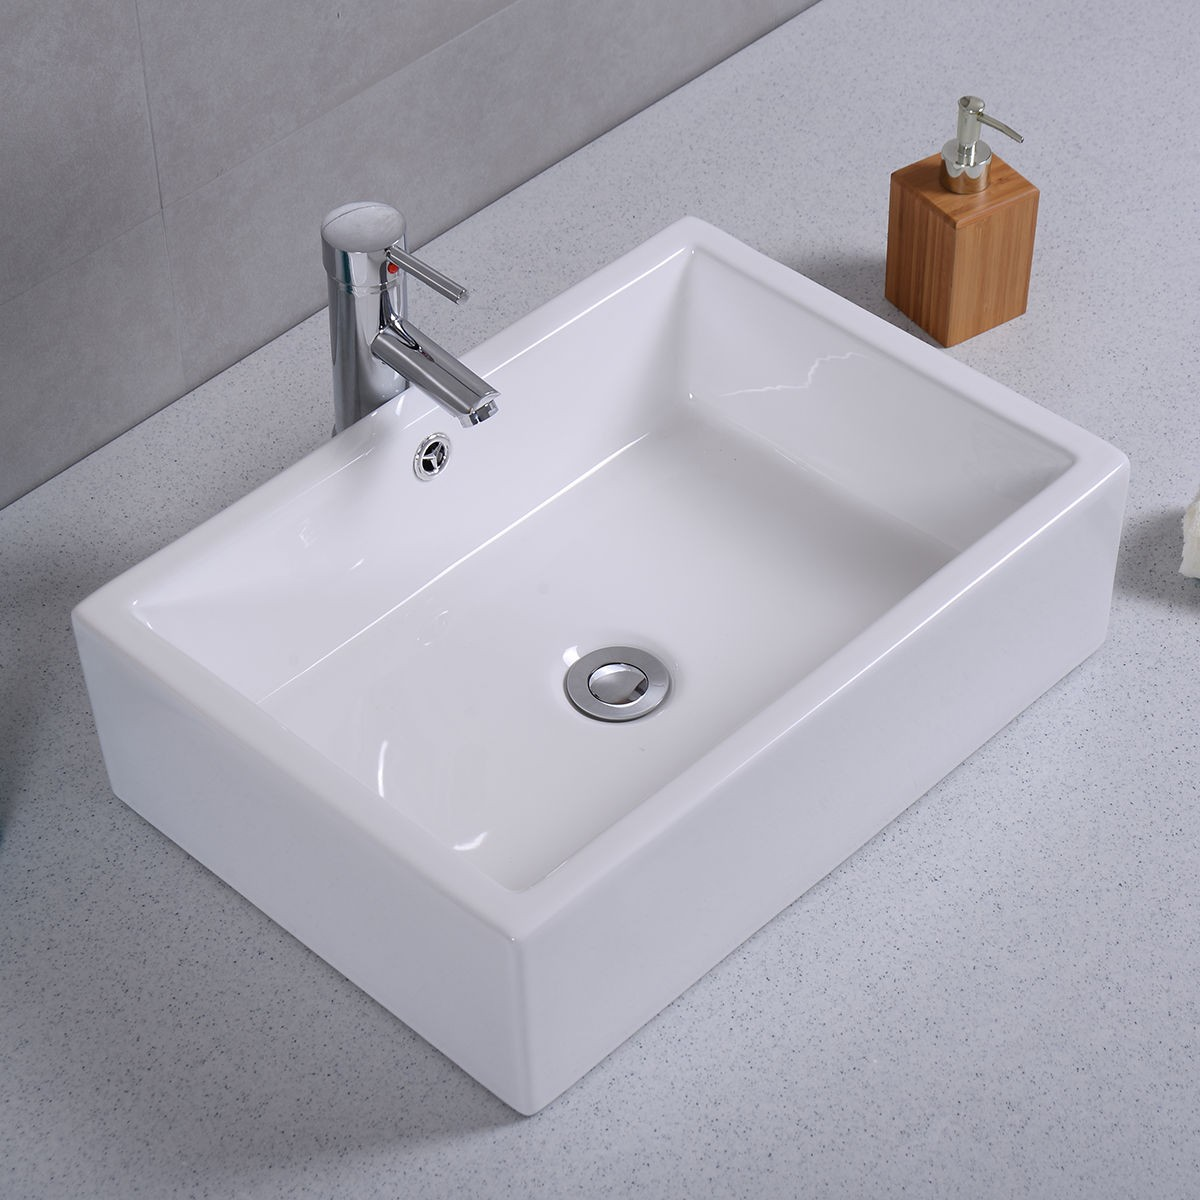 rectangular bathroom sink topmount 20 quot ceramic bathroom sink rectangle vessel bath deck mount 20115